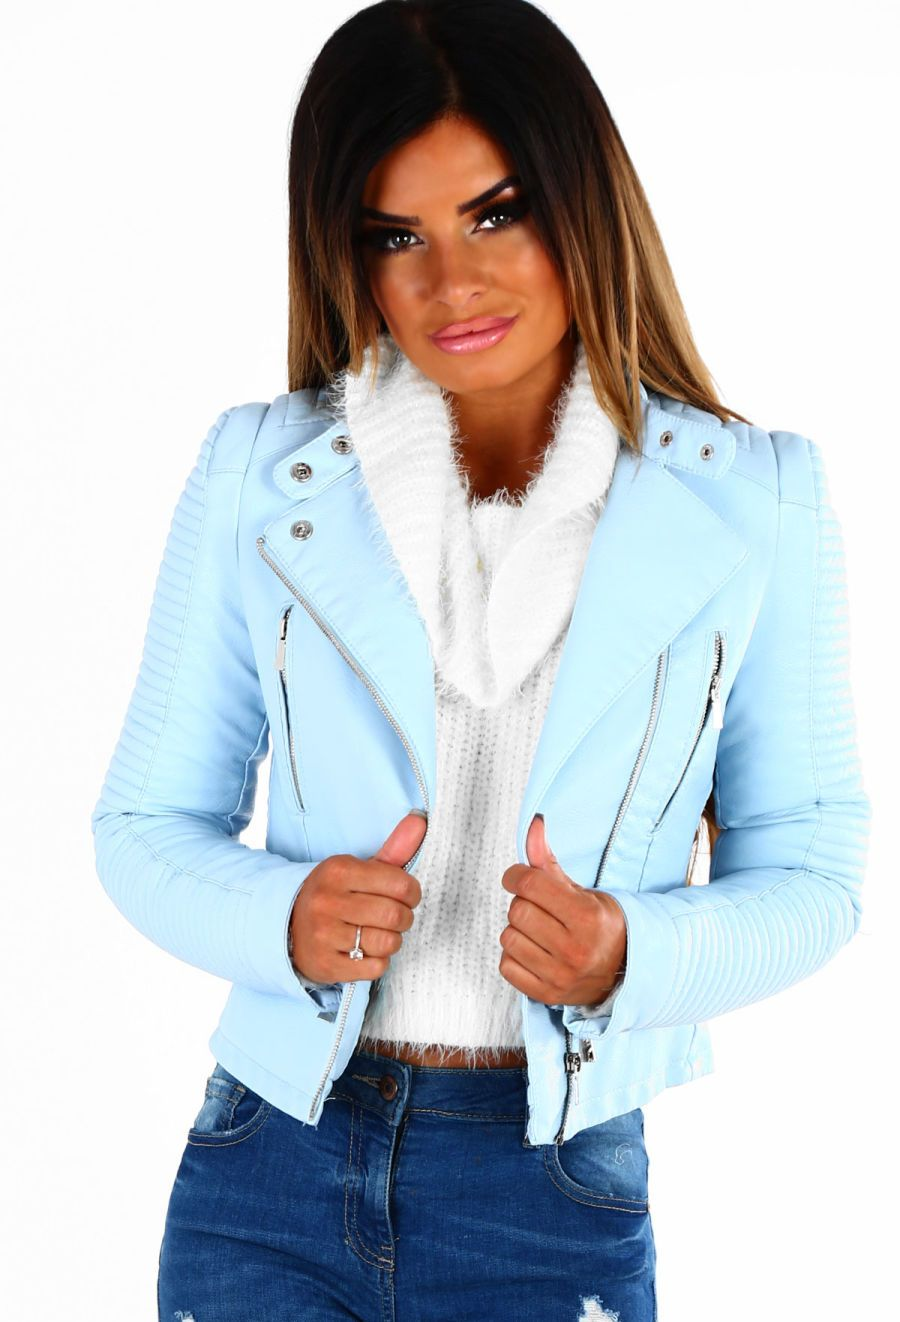 b8293b75e Be Brave Baby Blue Faux Leather Biker Jacket - 8